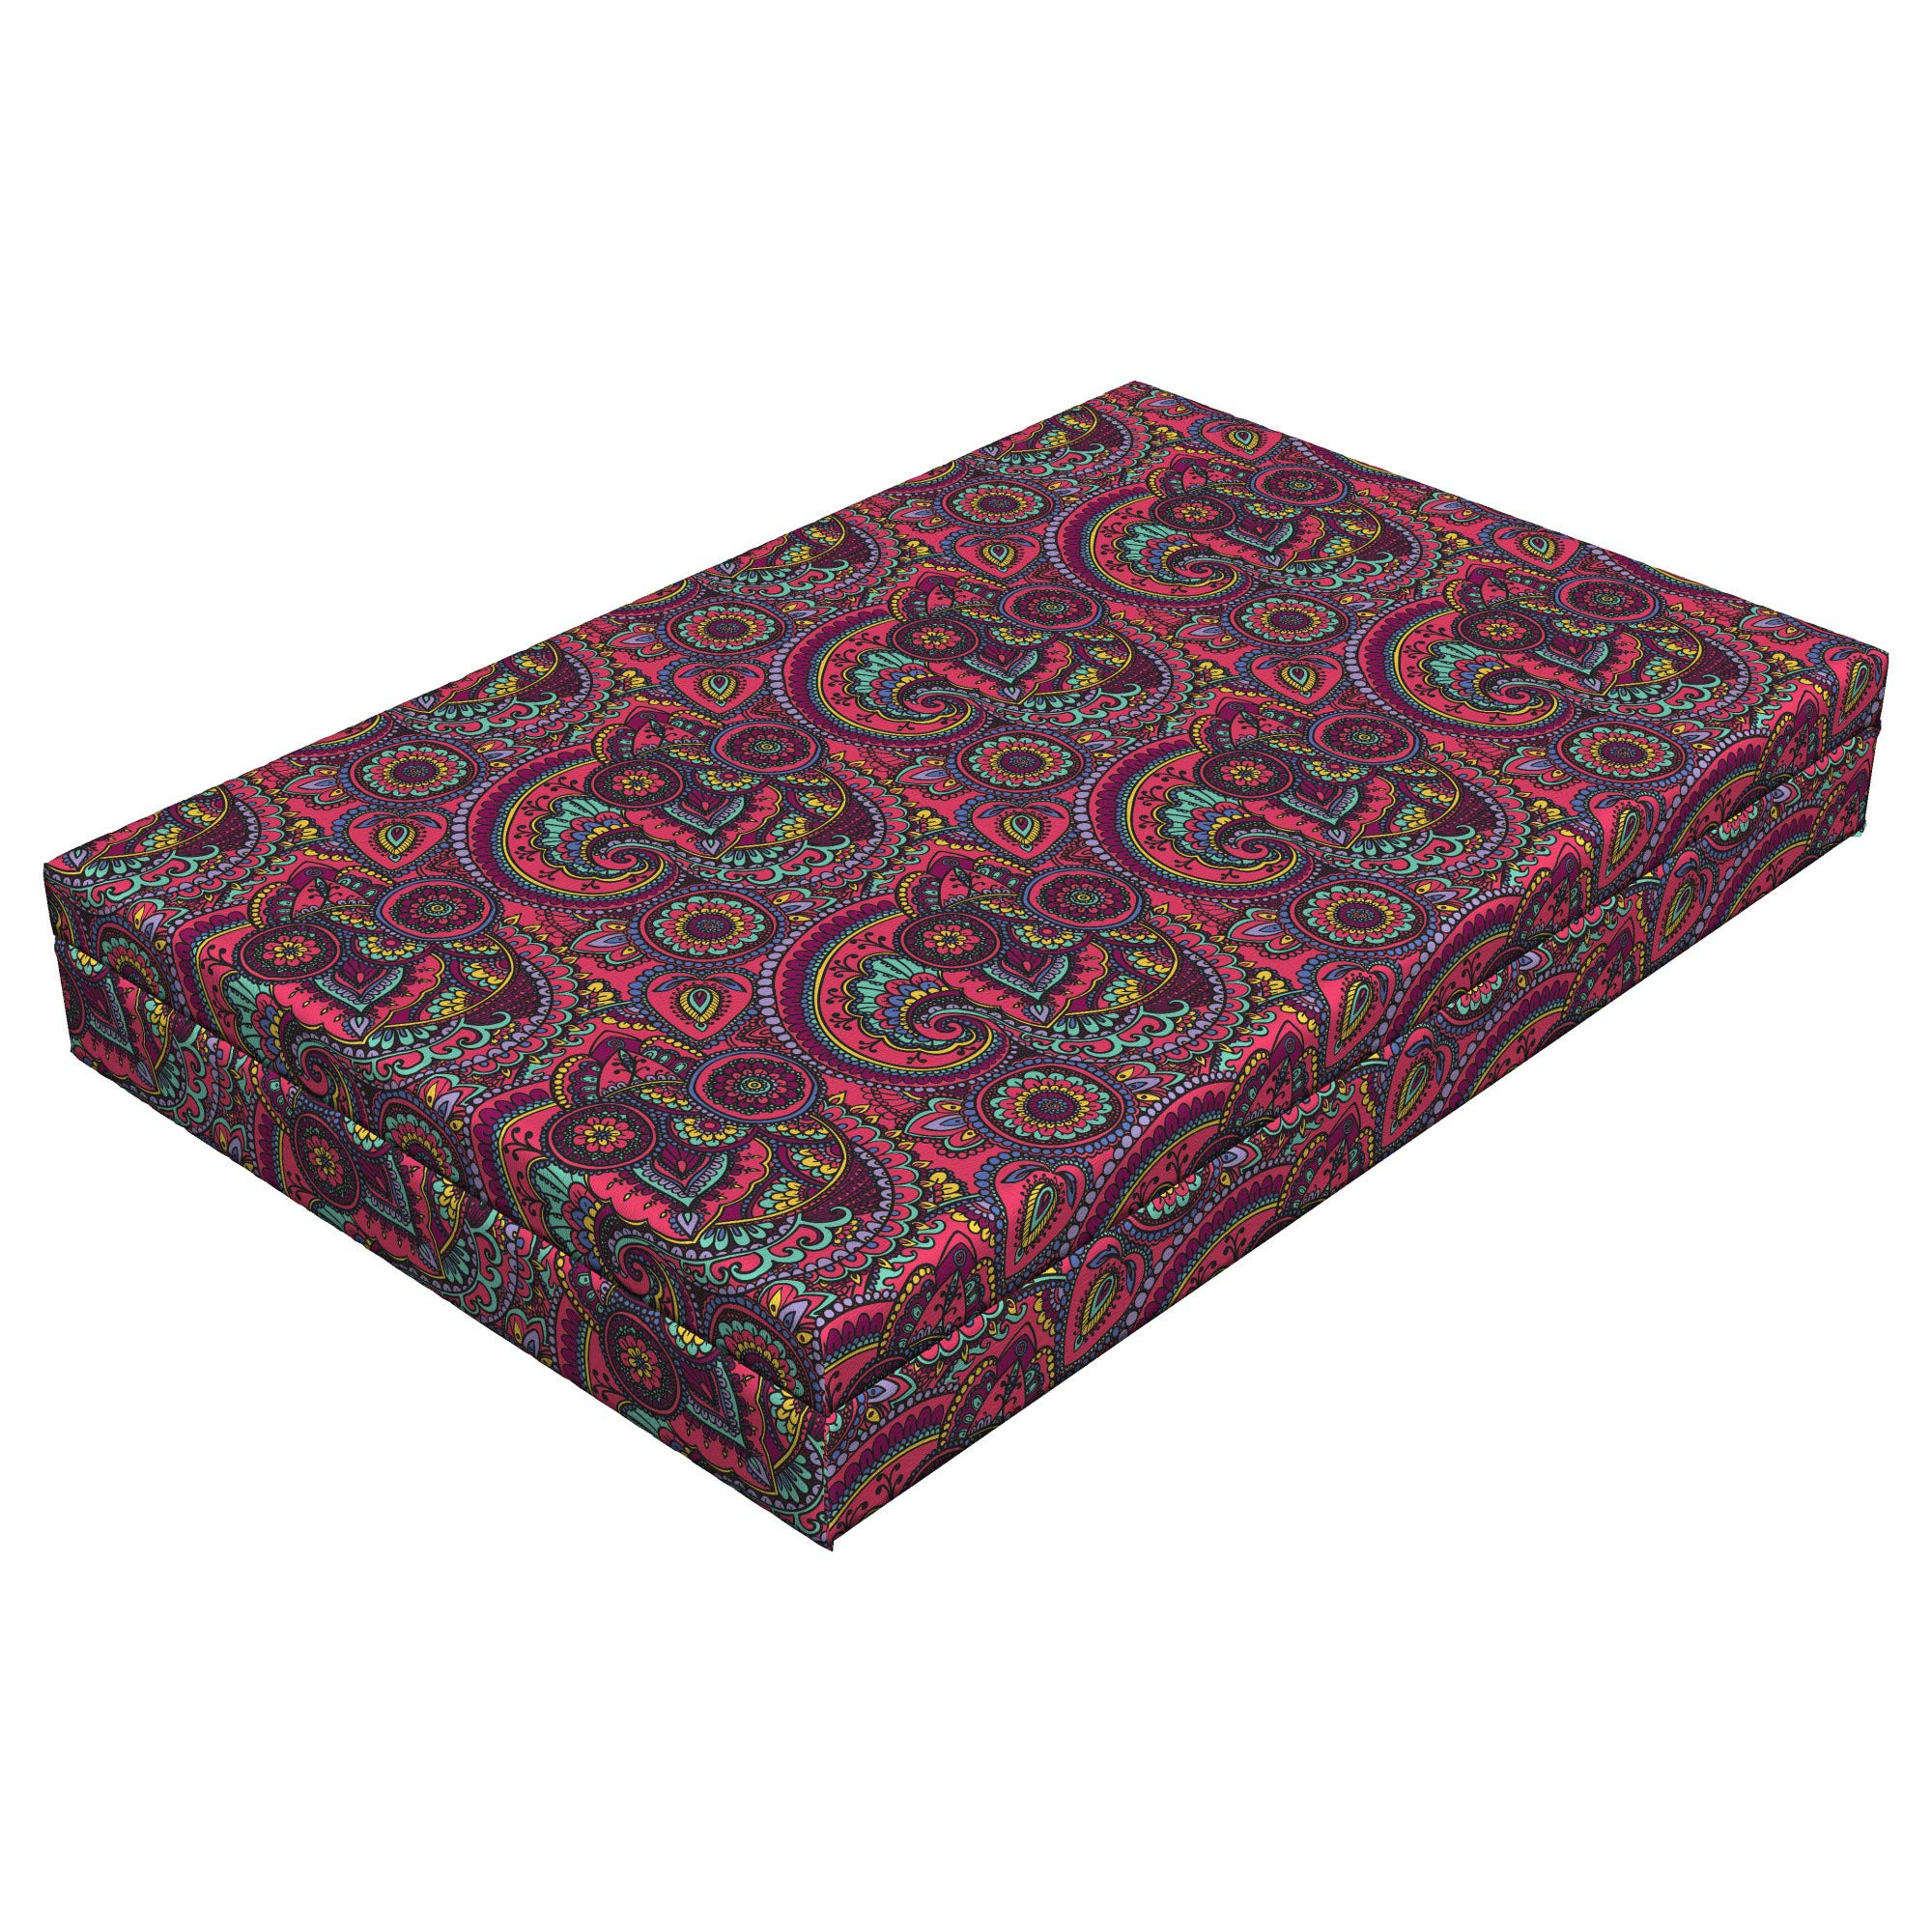 Lunarable Paisley Dog Bed, Vibrant Color Palette with Floral Traditional Geometrical Shapes Teardrop, Durable Washable Mat with Decorative Fabric Cover, 48'' x 32'' x 6'', Pink Seafoam Yellow